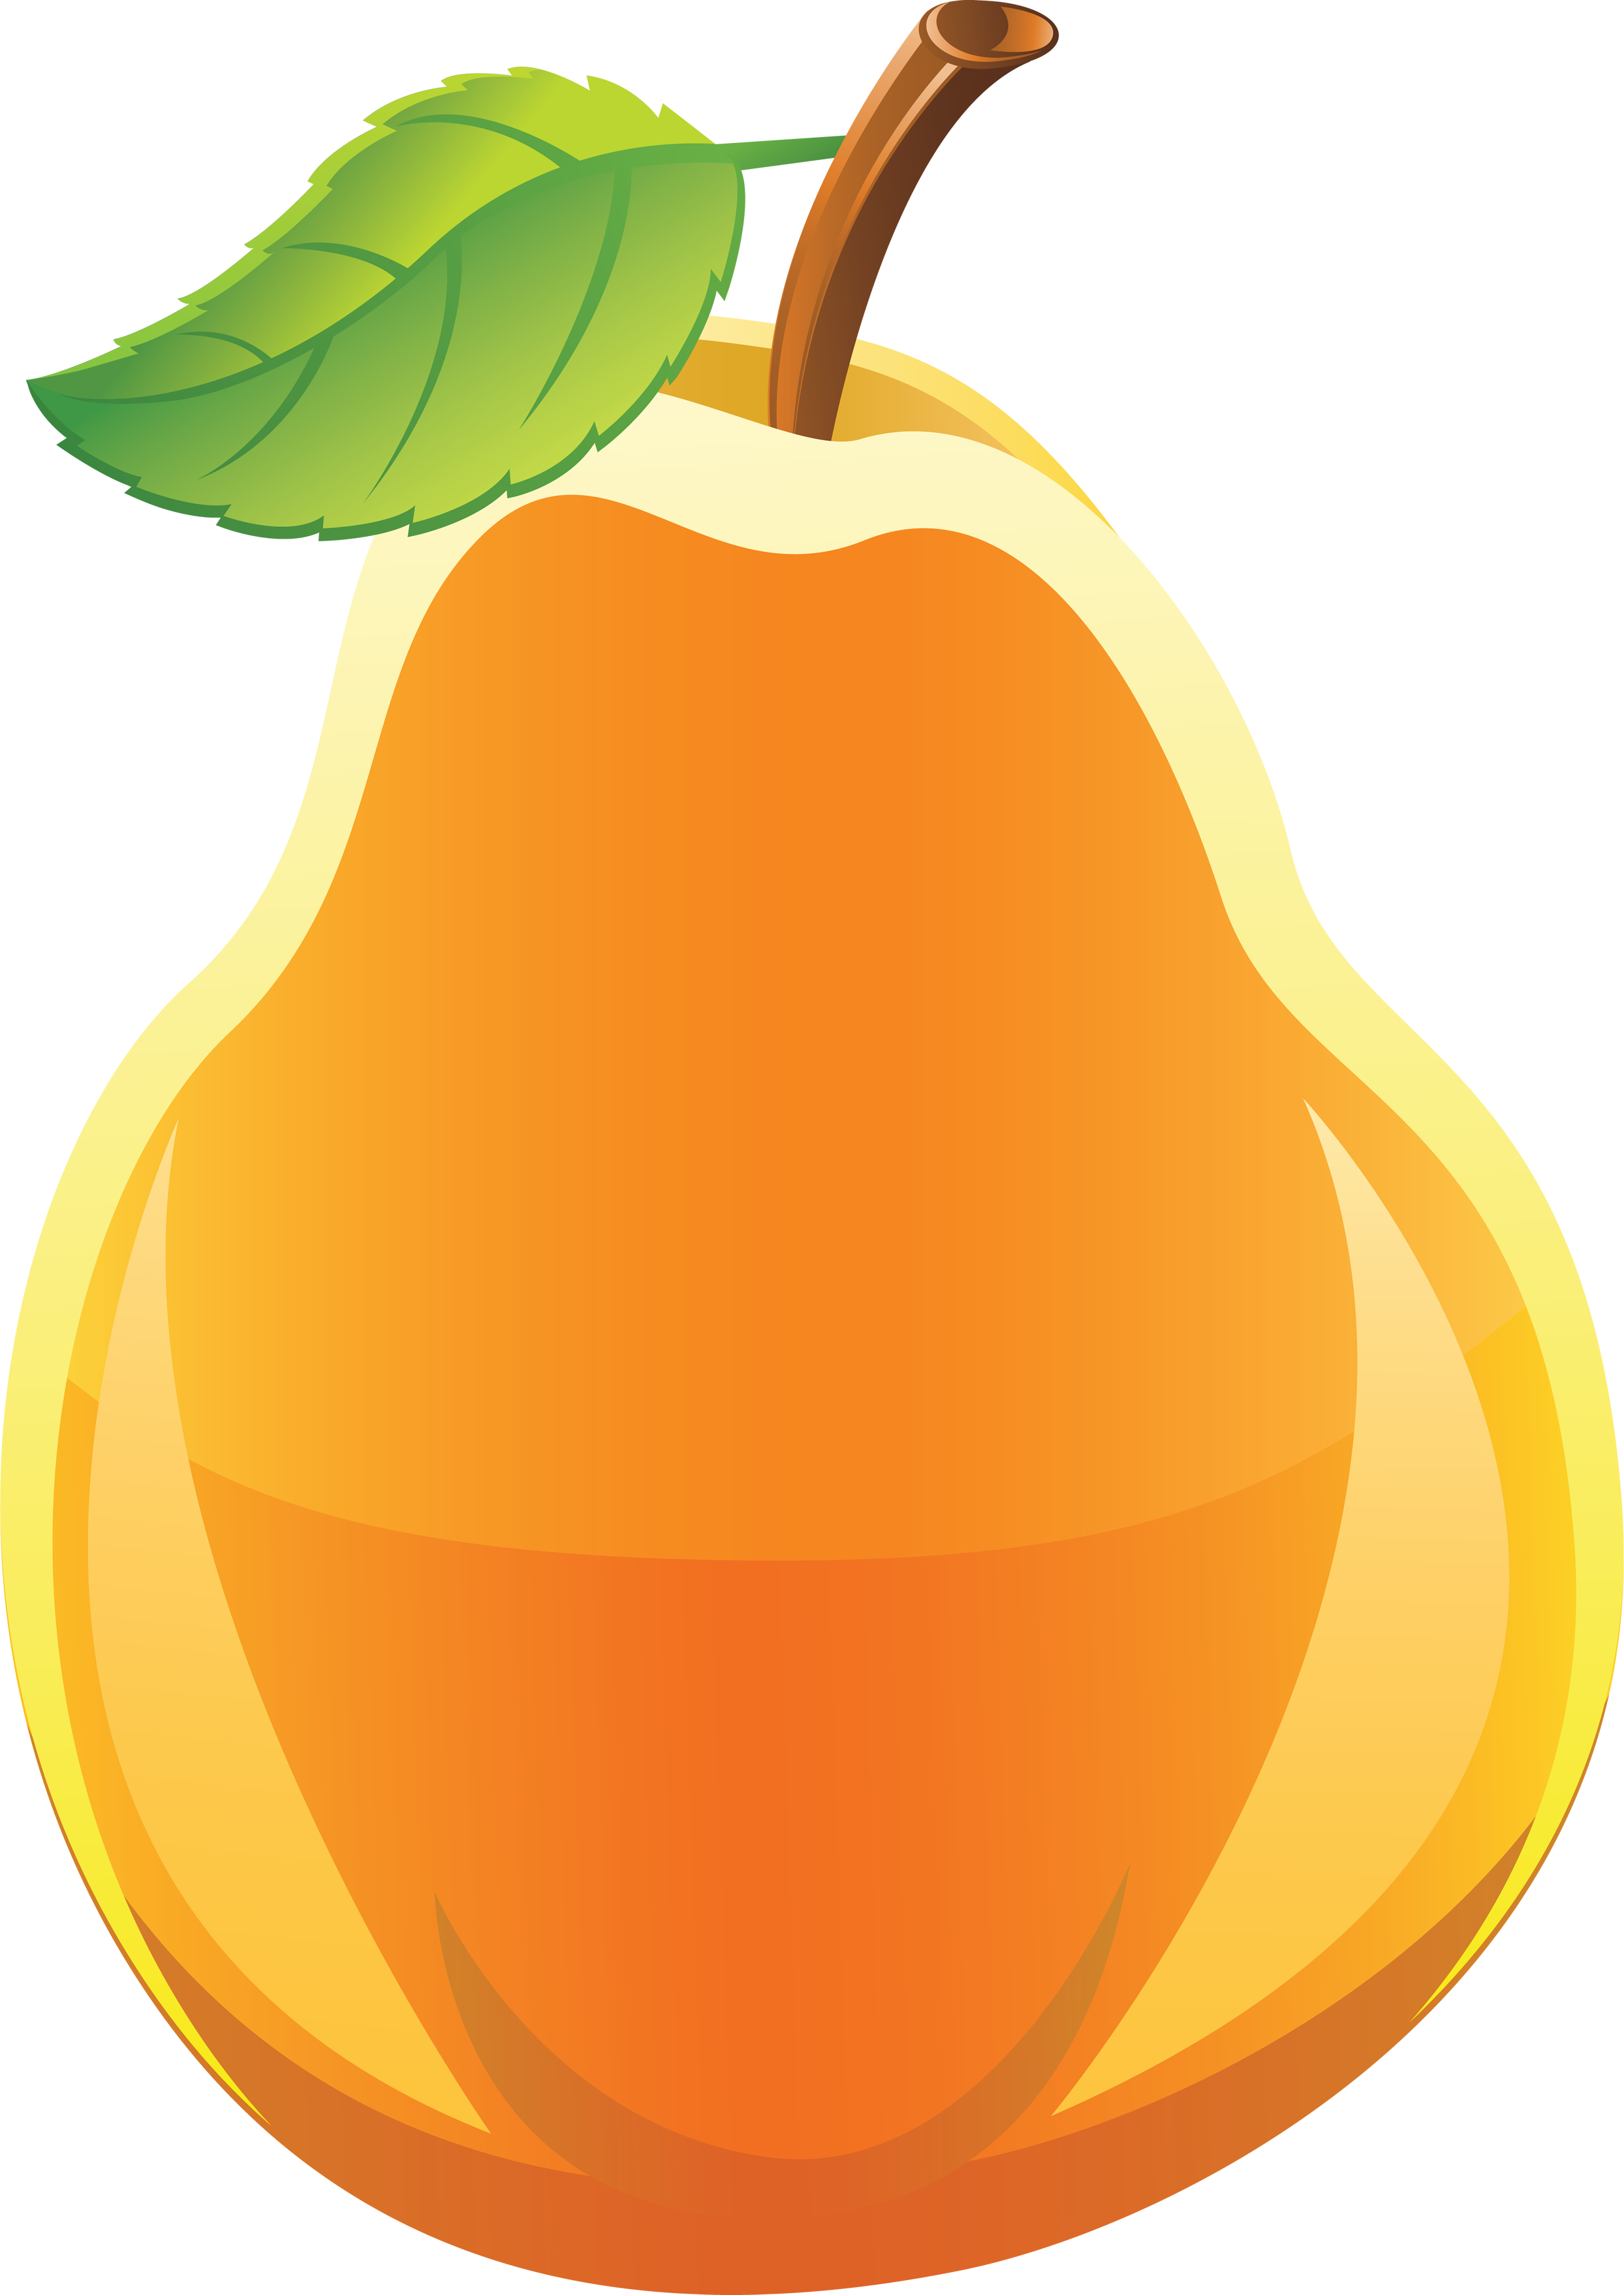 Pear clipart pear shape.  collection of png